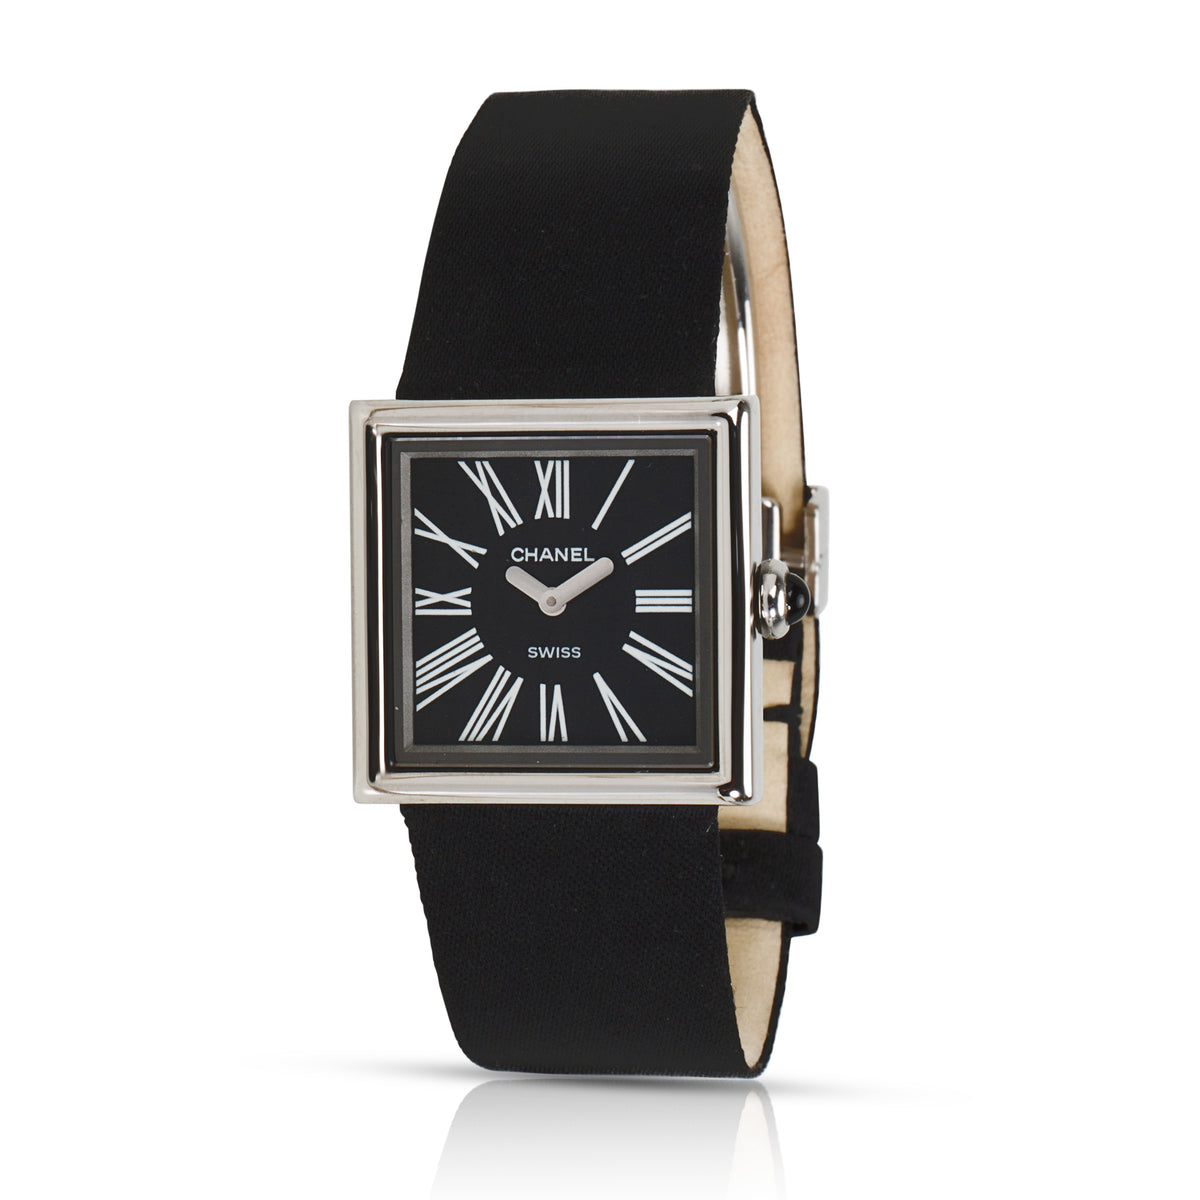 Chanel Acier Square Women's Watch in Stainless Steel